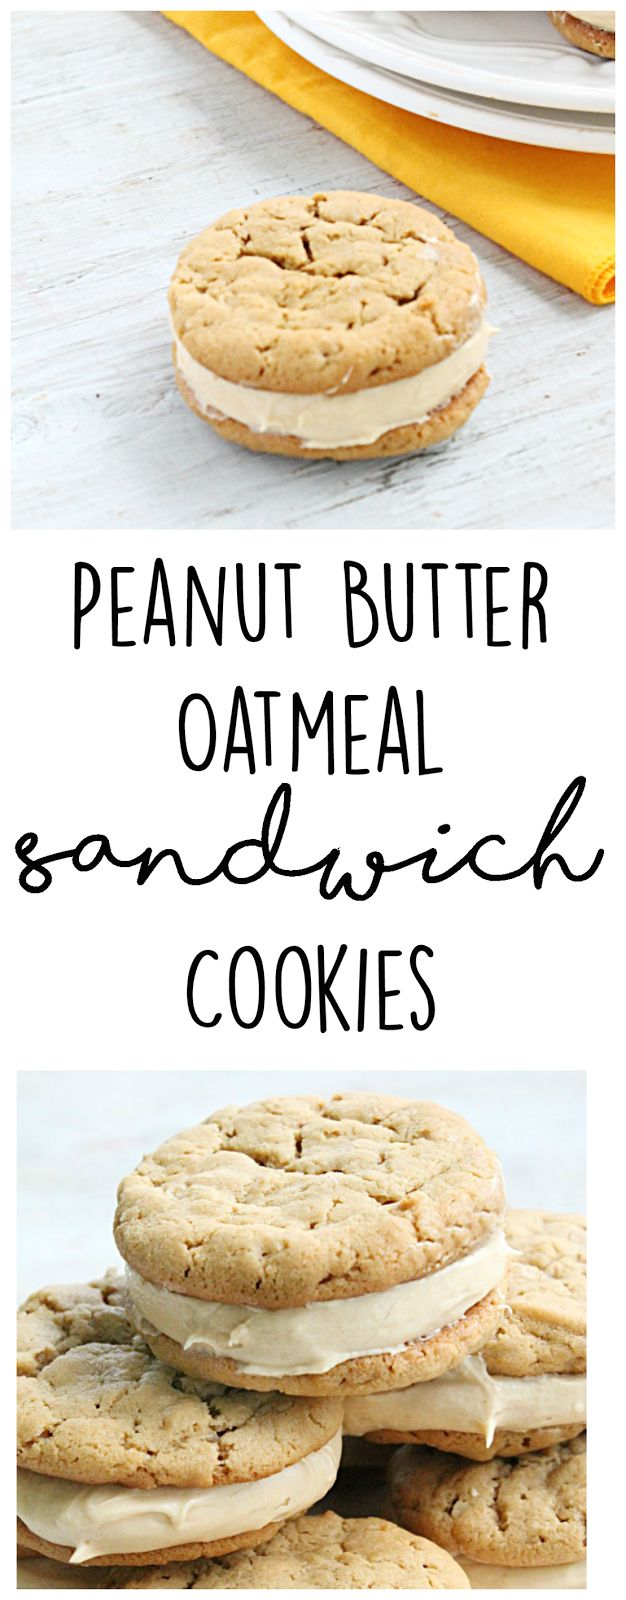 Peanut Butter Oatmeal Sandwich Cookies • Table for Seven